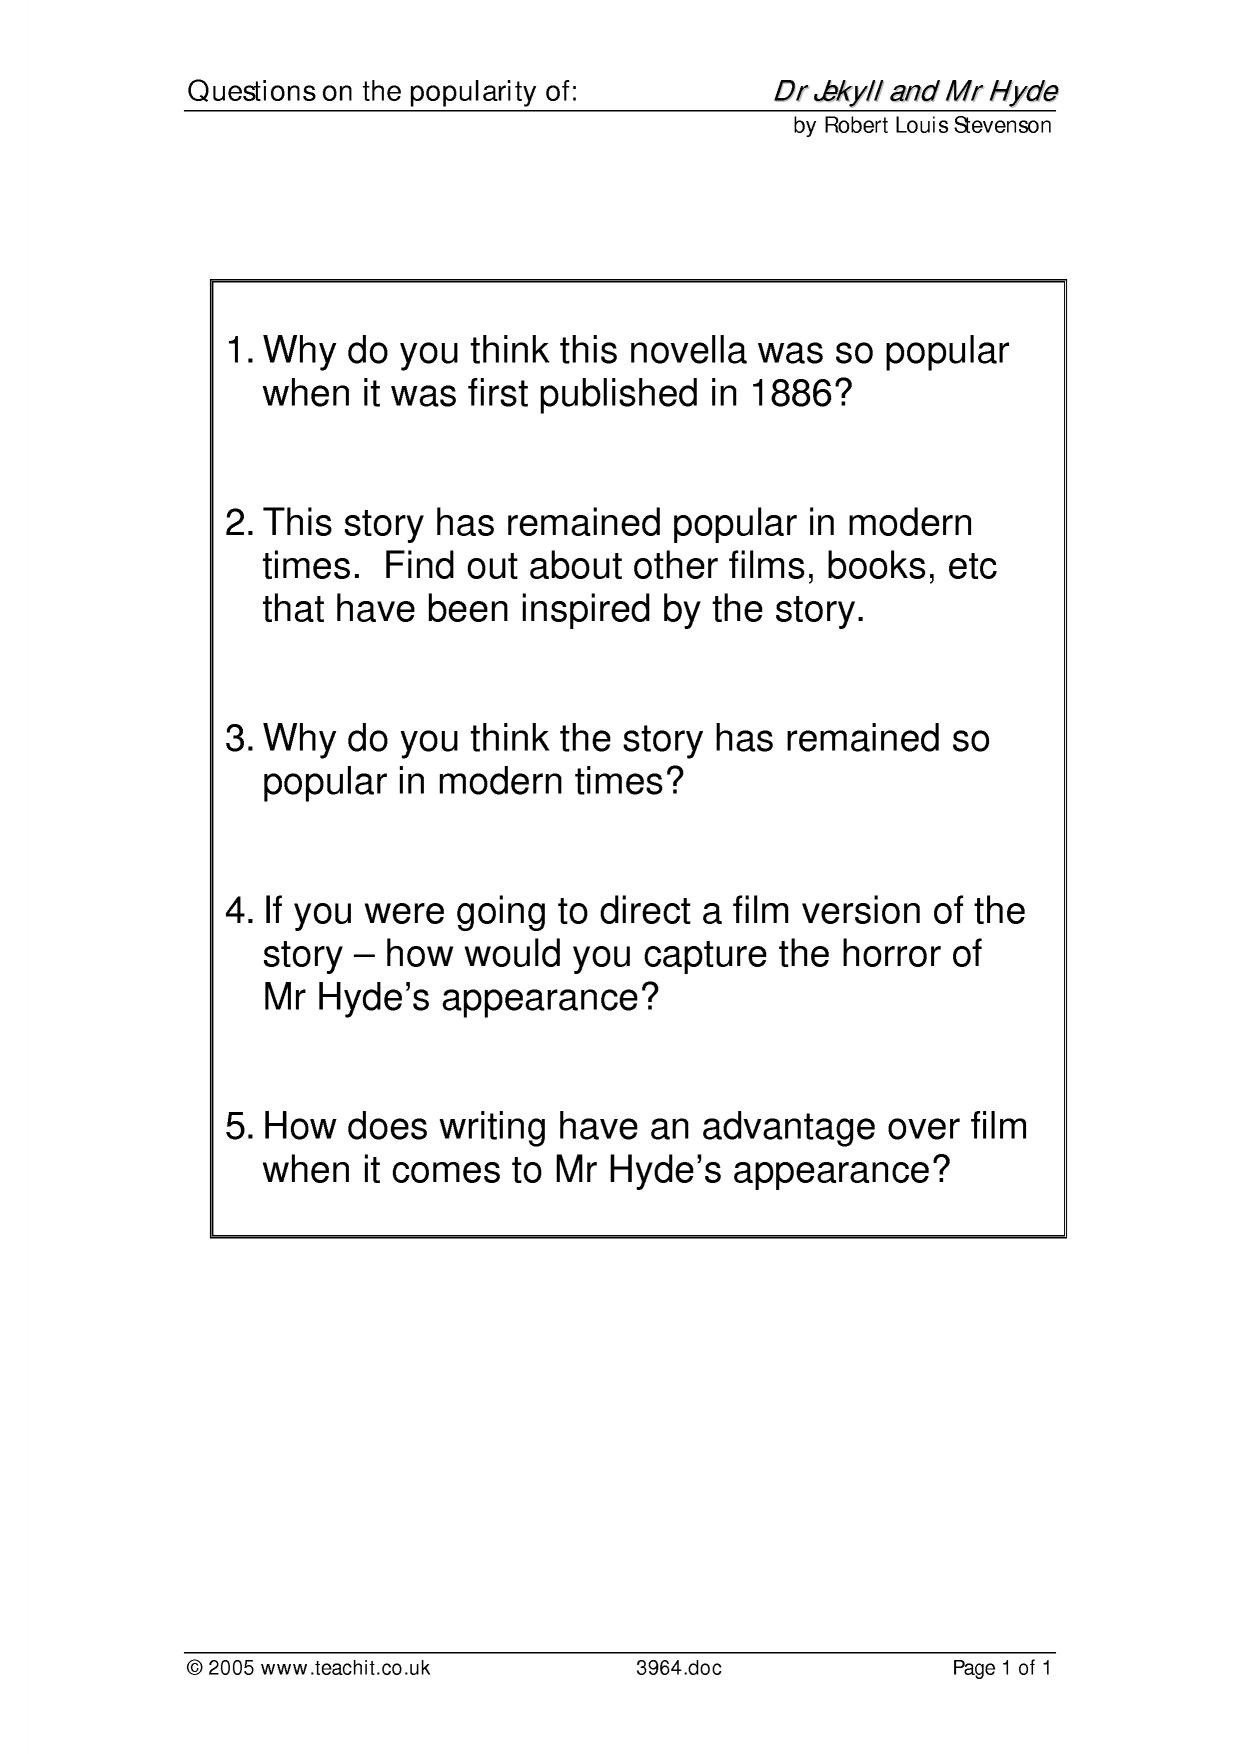 jekyll and hyde essay carlton smith author biography essay harlem pie follow paper details student essay